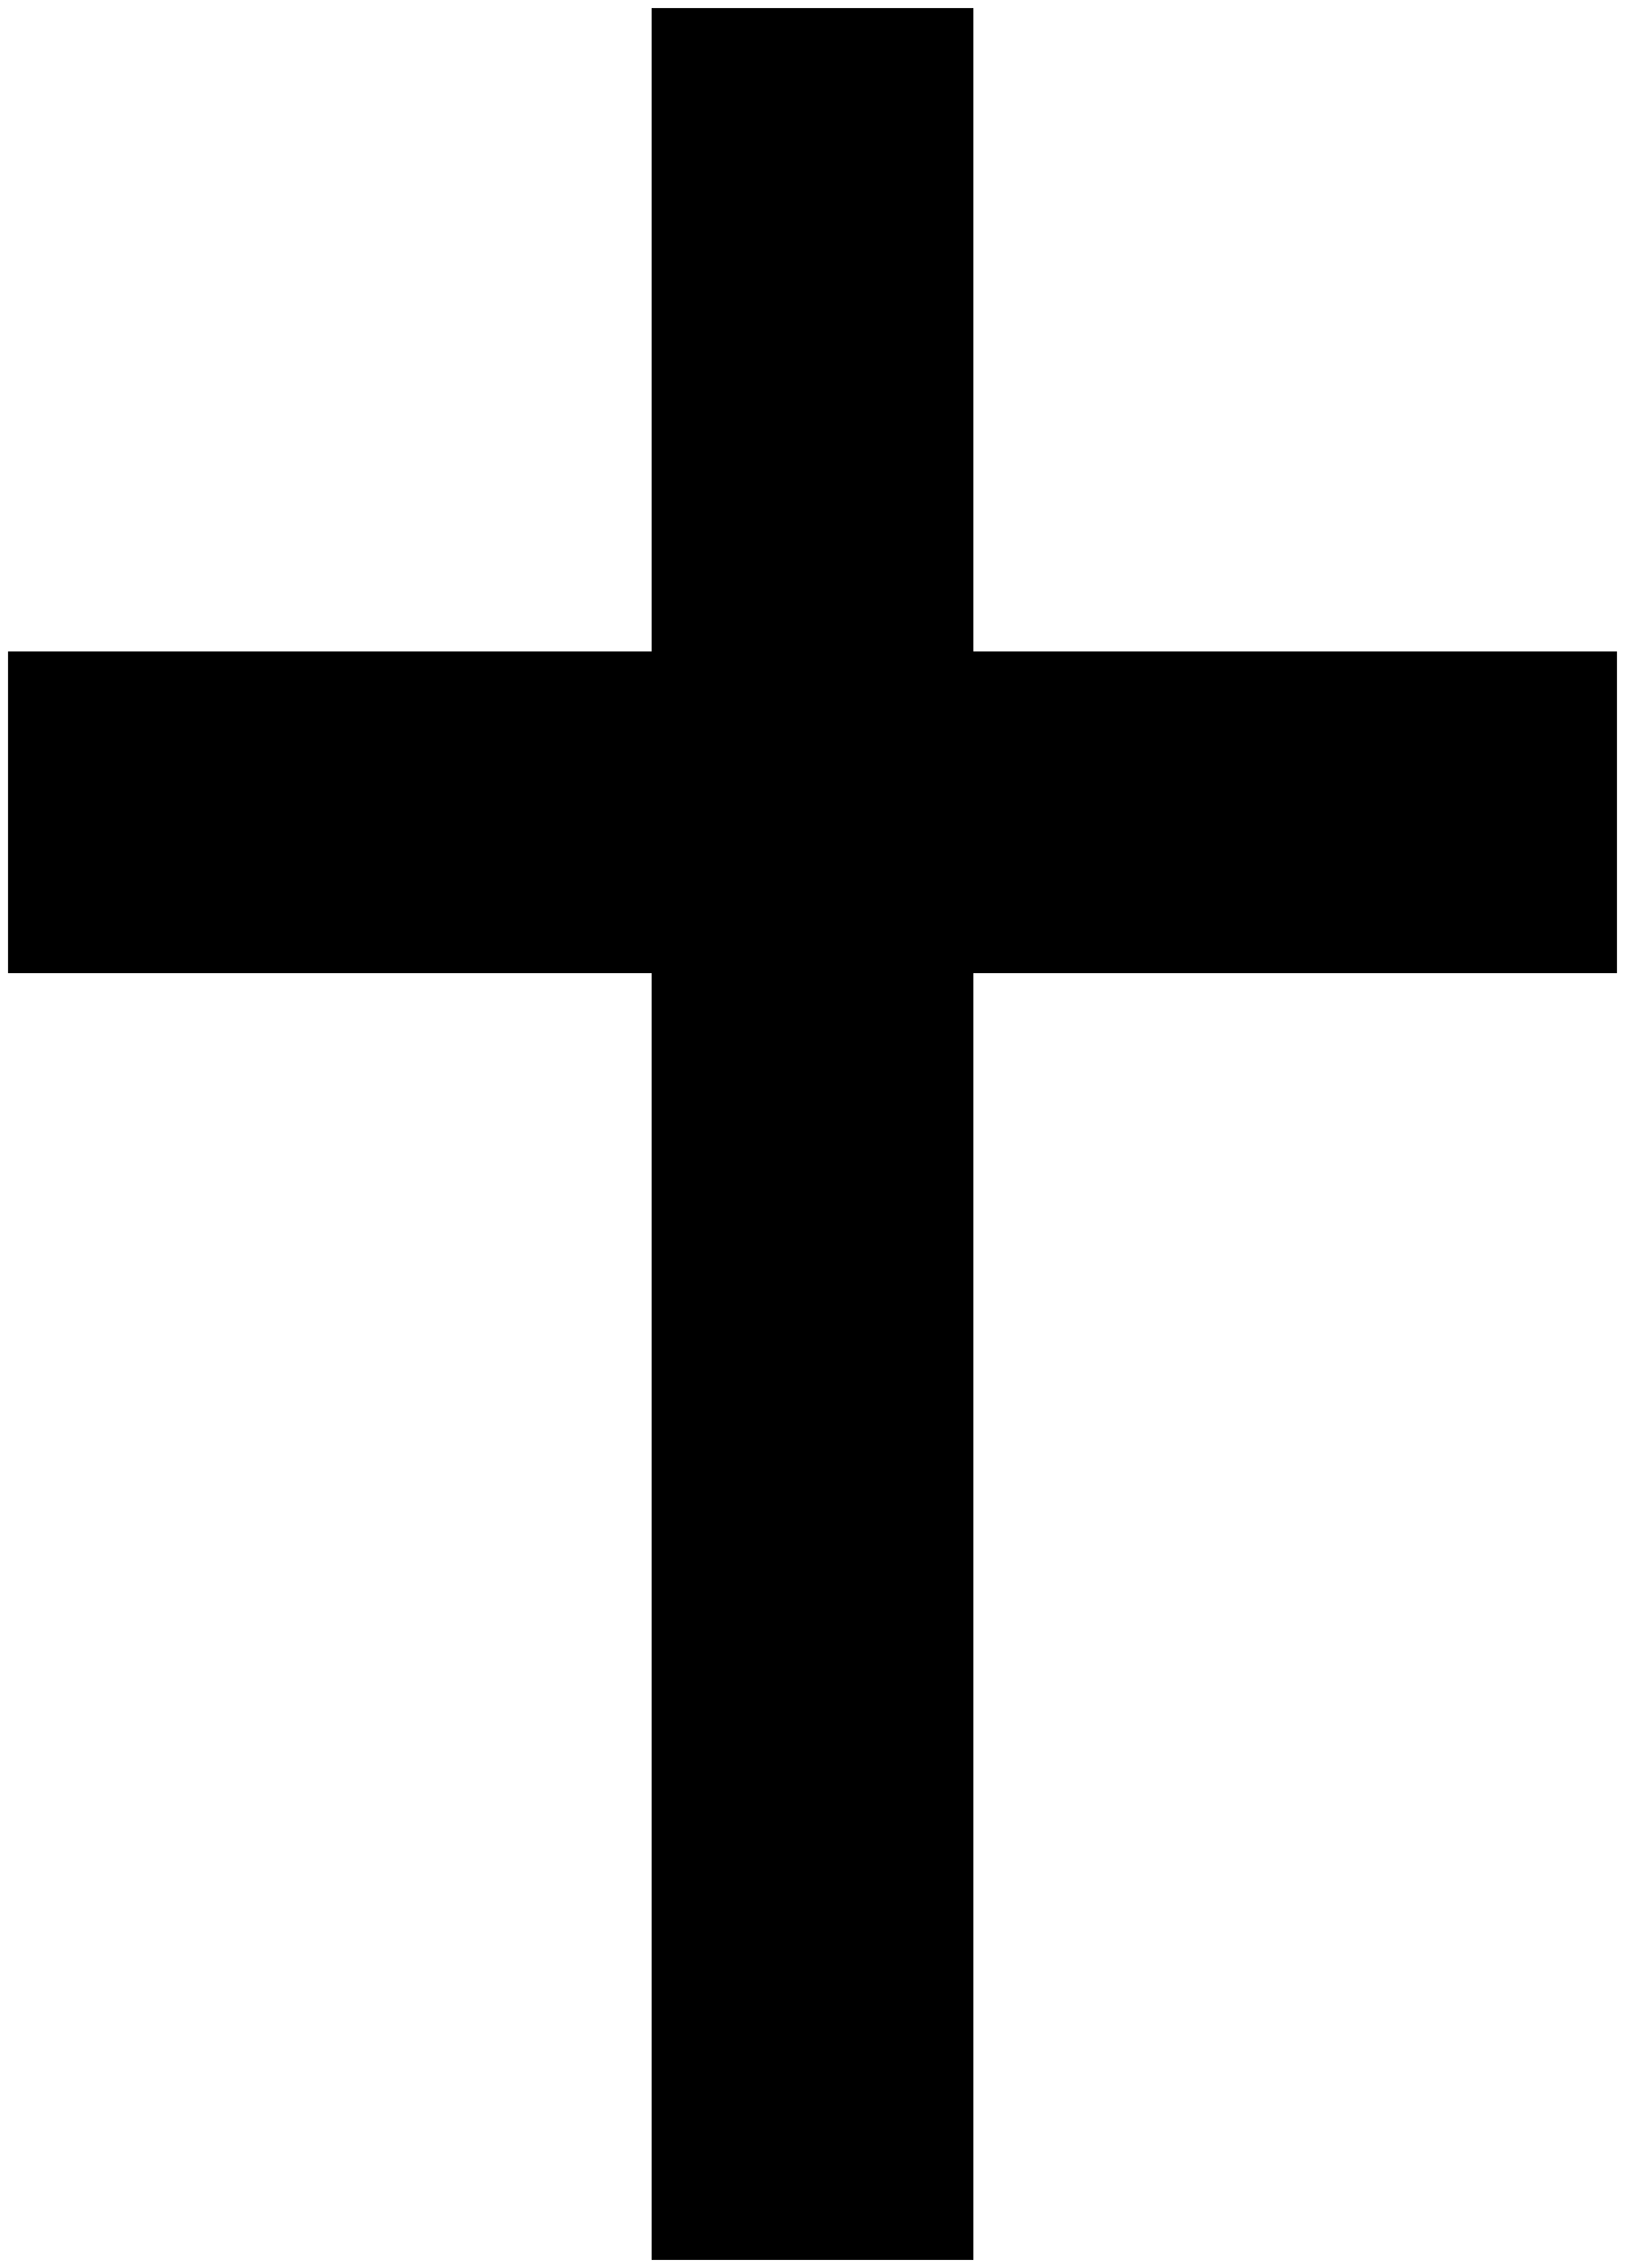 Cross clipart png black and white library Simple Christian Cross Clipart transparent PNG - StickPNG black and white library